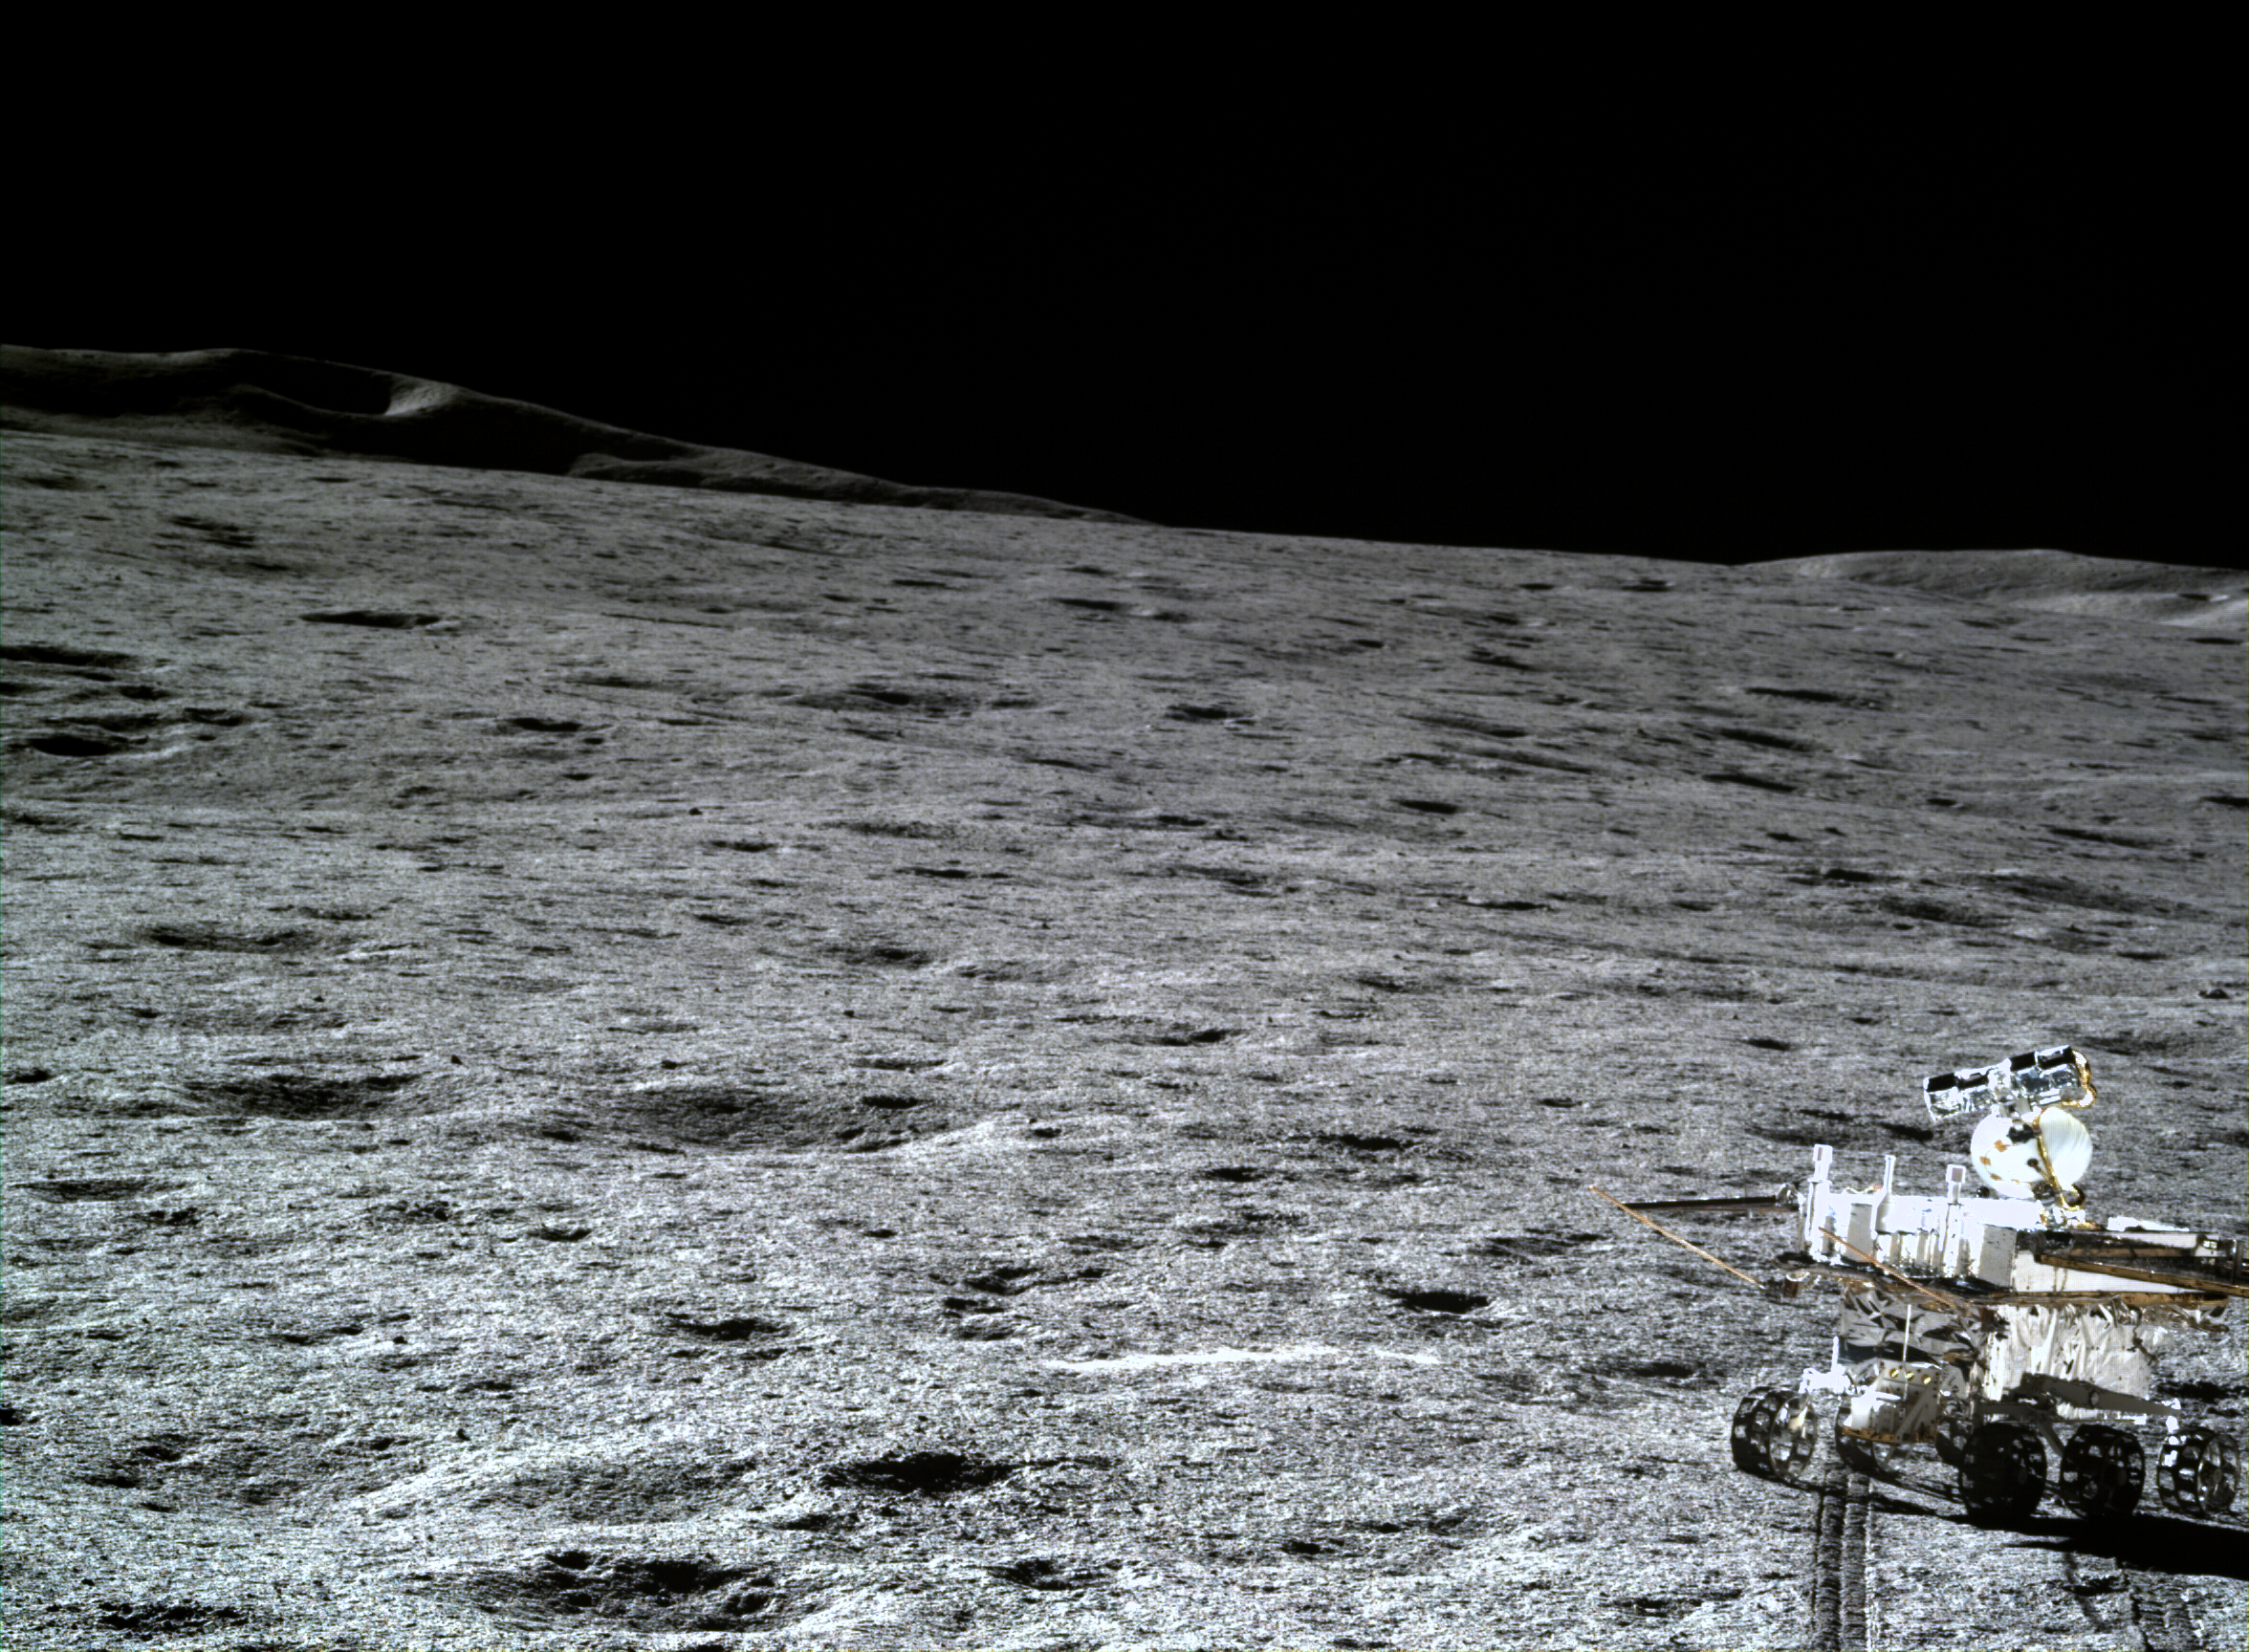 A view of the lunar landscape and the Yutu-2 rover, taken by the Chang'e 4 lander.